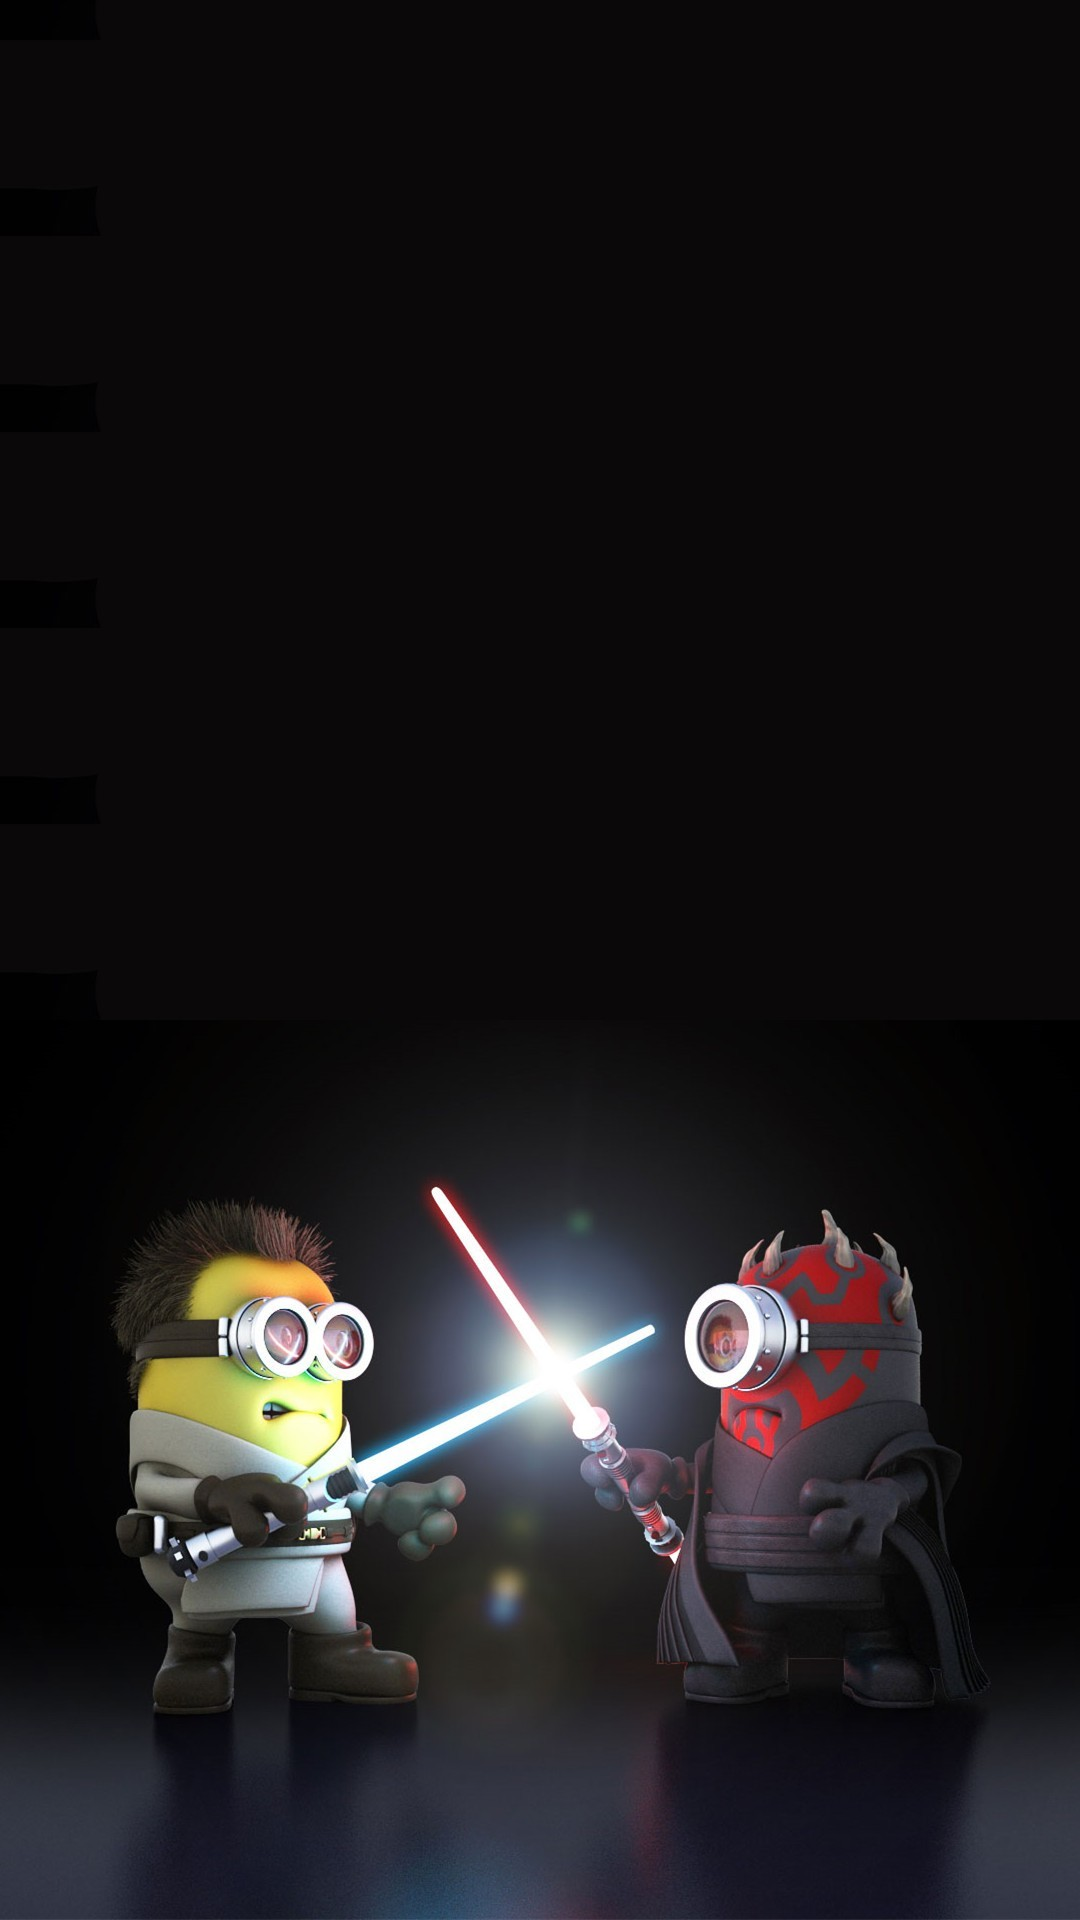 1080x1920 2014 Awesome Despicable Me Inspired Minions Star Wars iphone 6 plus  wallpaper for Halloween #iphone